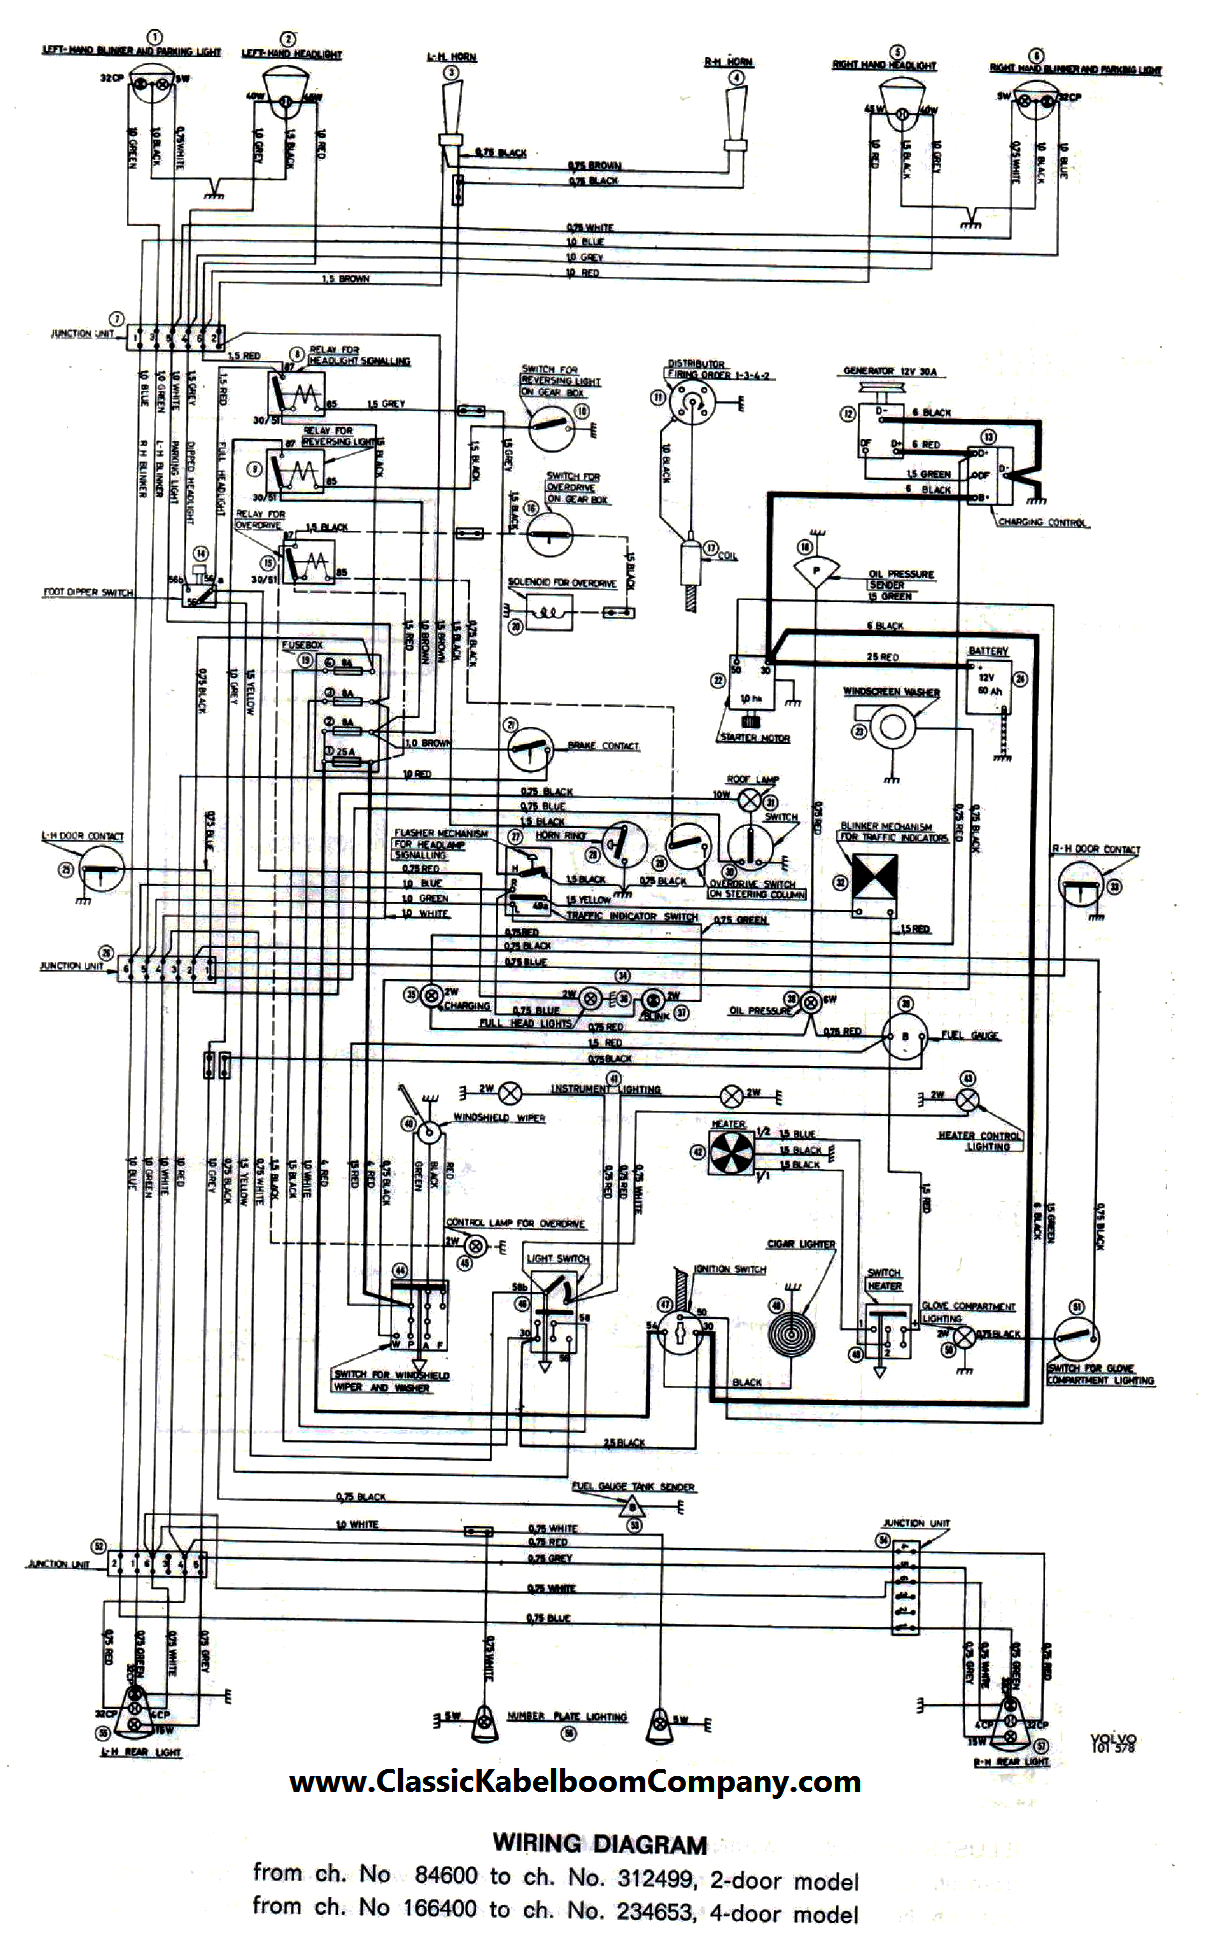 John Deere X320 Wiring Diagram on Diagram Of Car Stereo Wiring Harness Radio